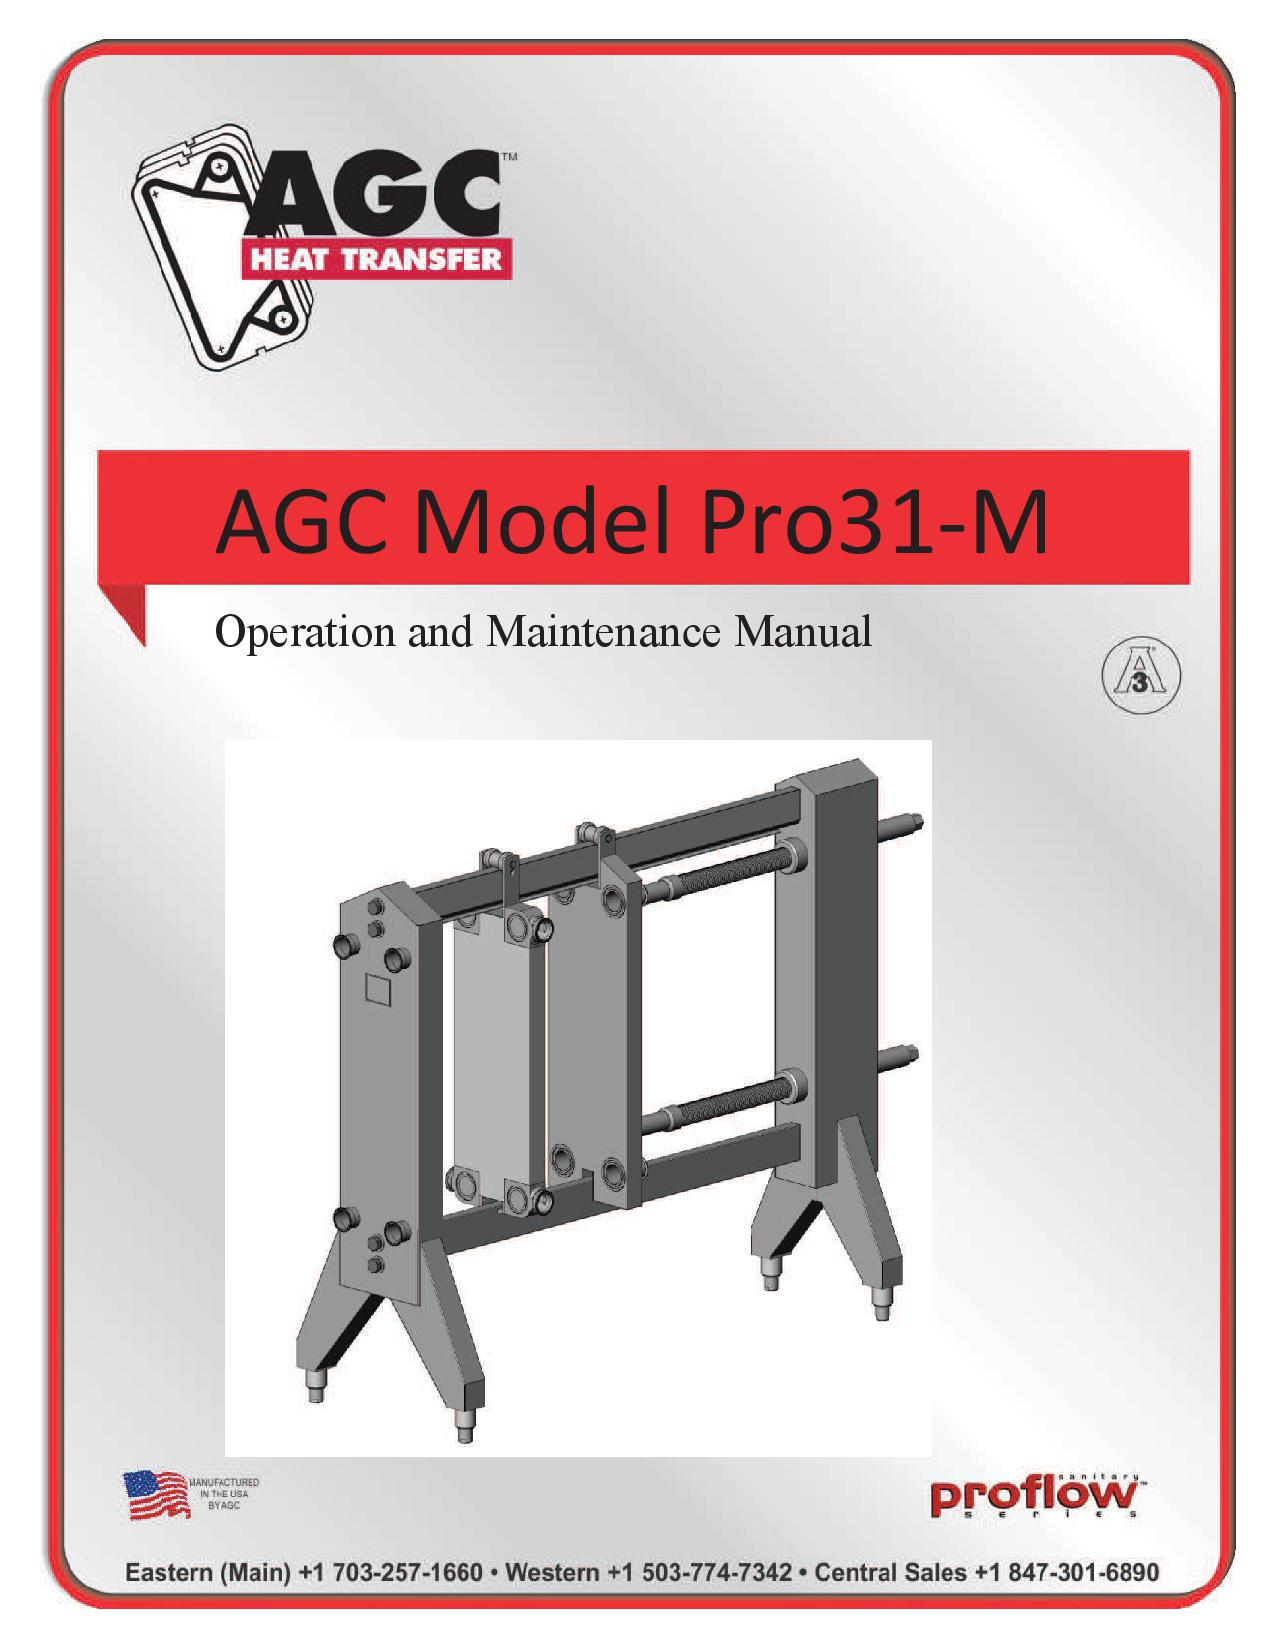 AGC Operating Manual Pro31-M